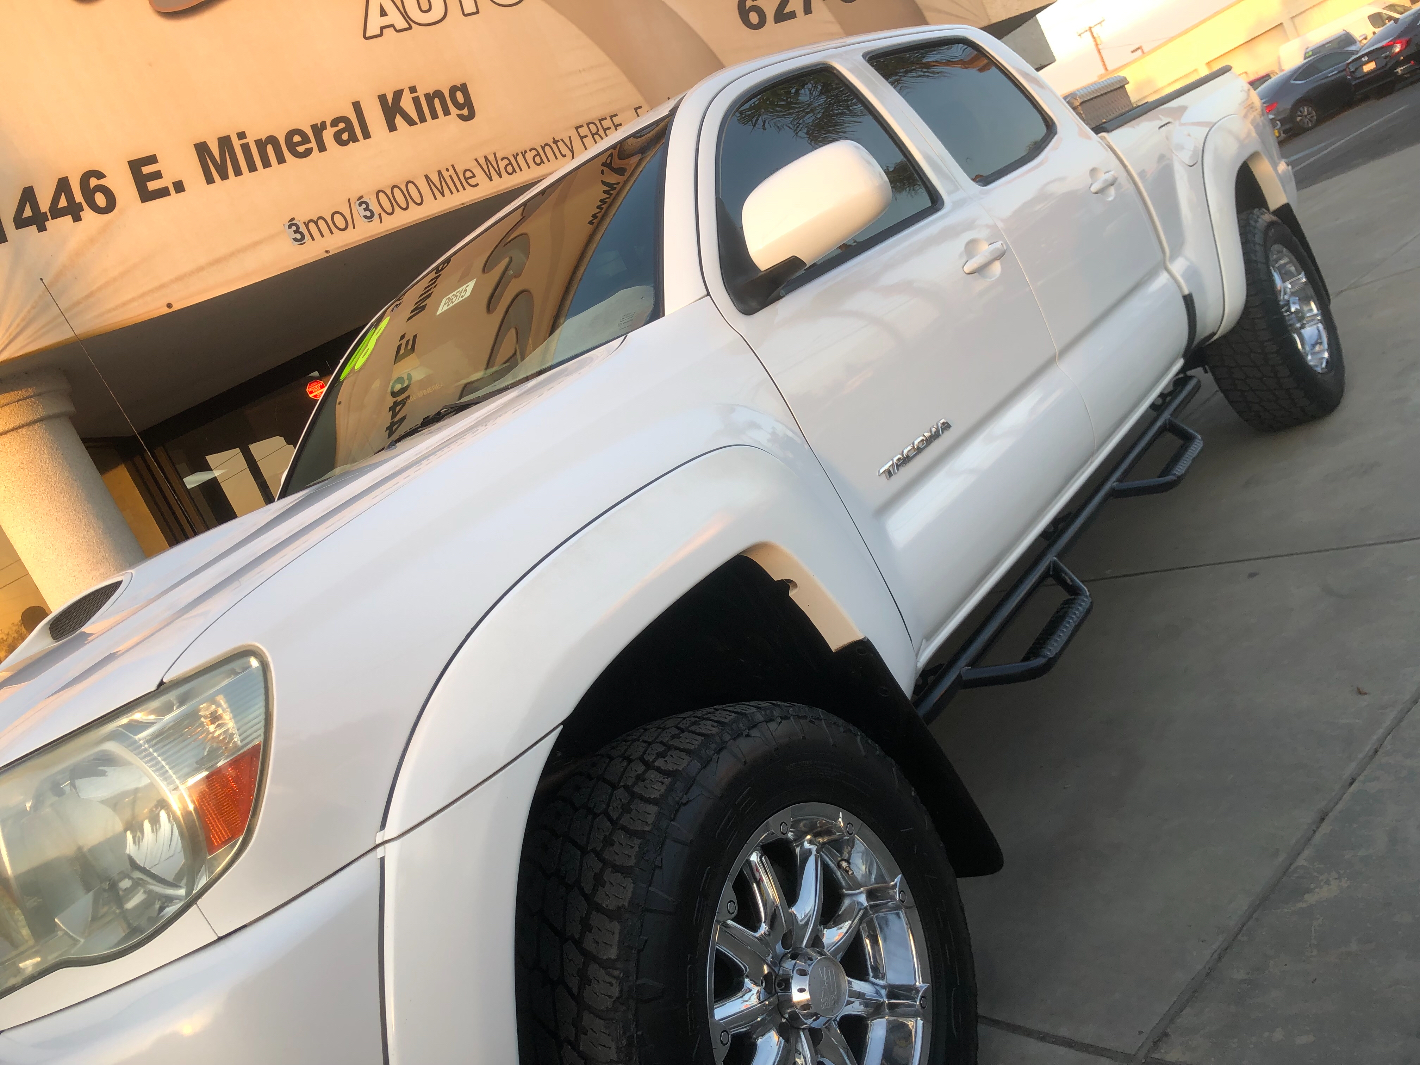 2008 TOYOTA Tacoma 4x4 SR5 Long Bed